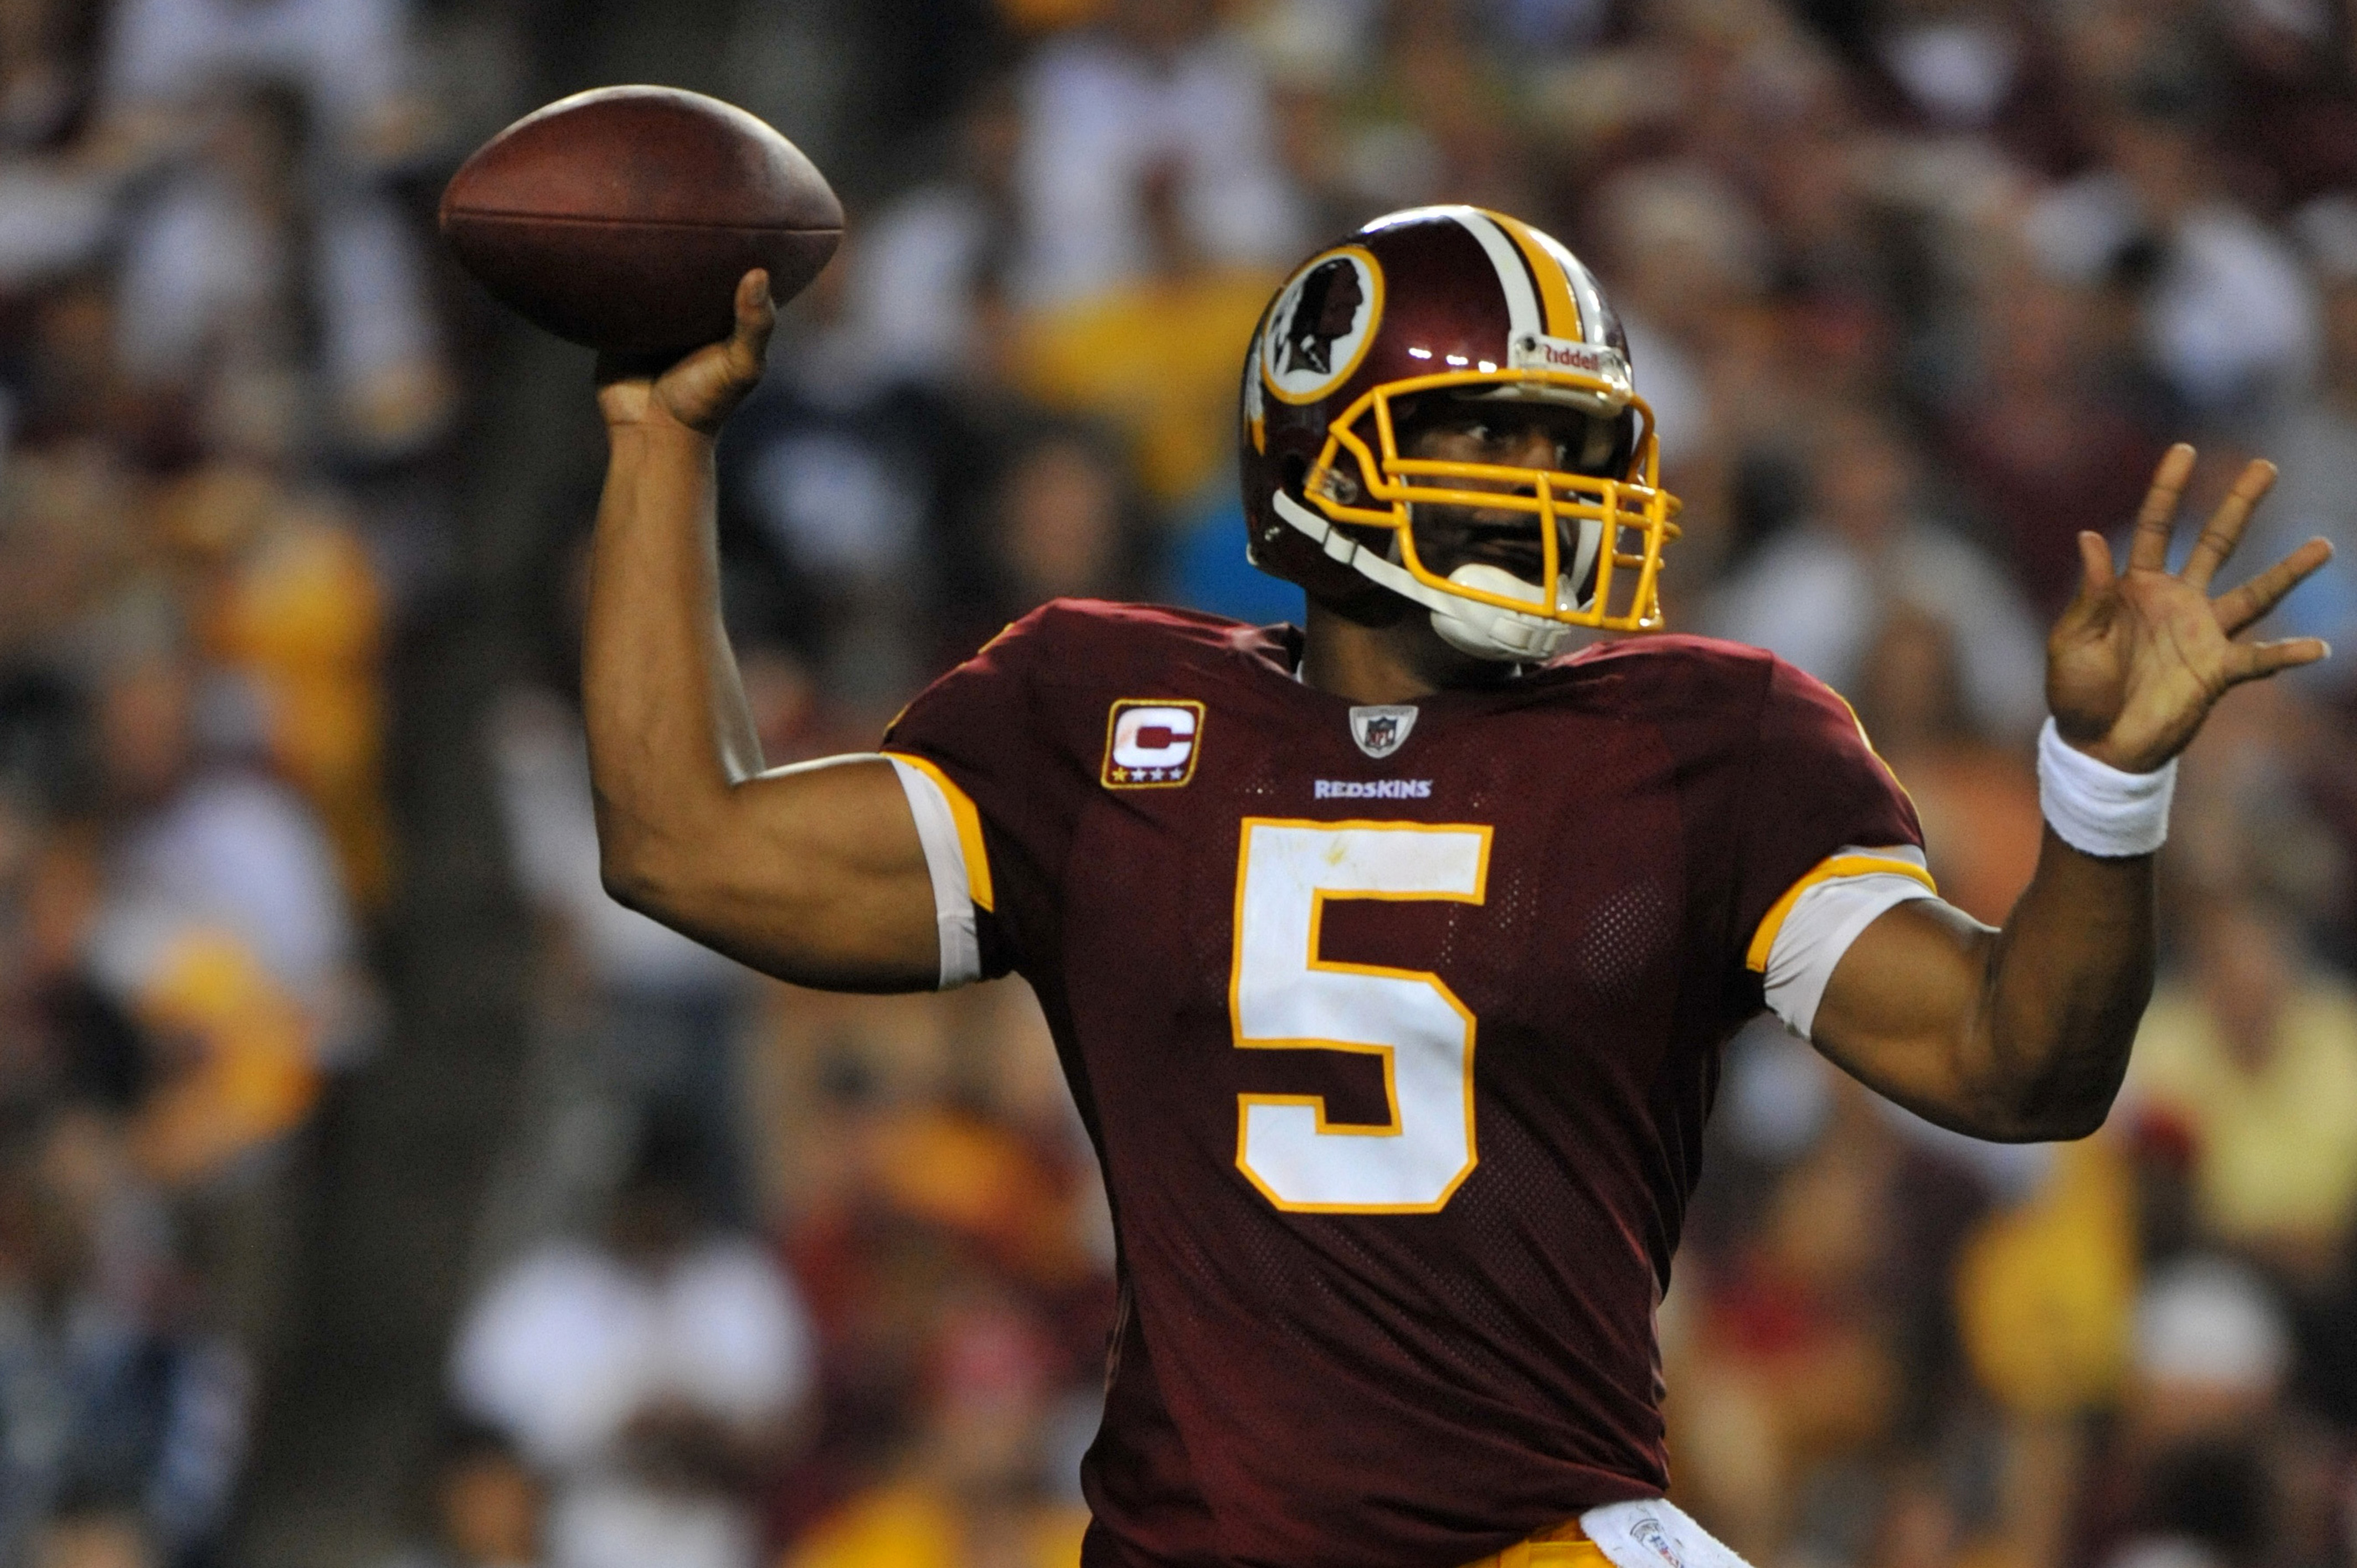 LANDOVER - SEPTEMBER 12:  Donovan McNabb #5 of the Washington Redskins passes during the NFL season opener against the Dallas Cowboys at FedExField on September 12, 2010 in Landover, Maryland. The Redskins defeated the Cowboys 13-7. (Photo by Larry French